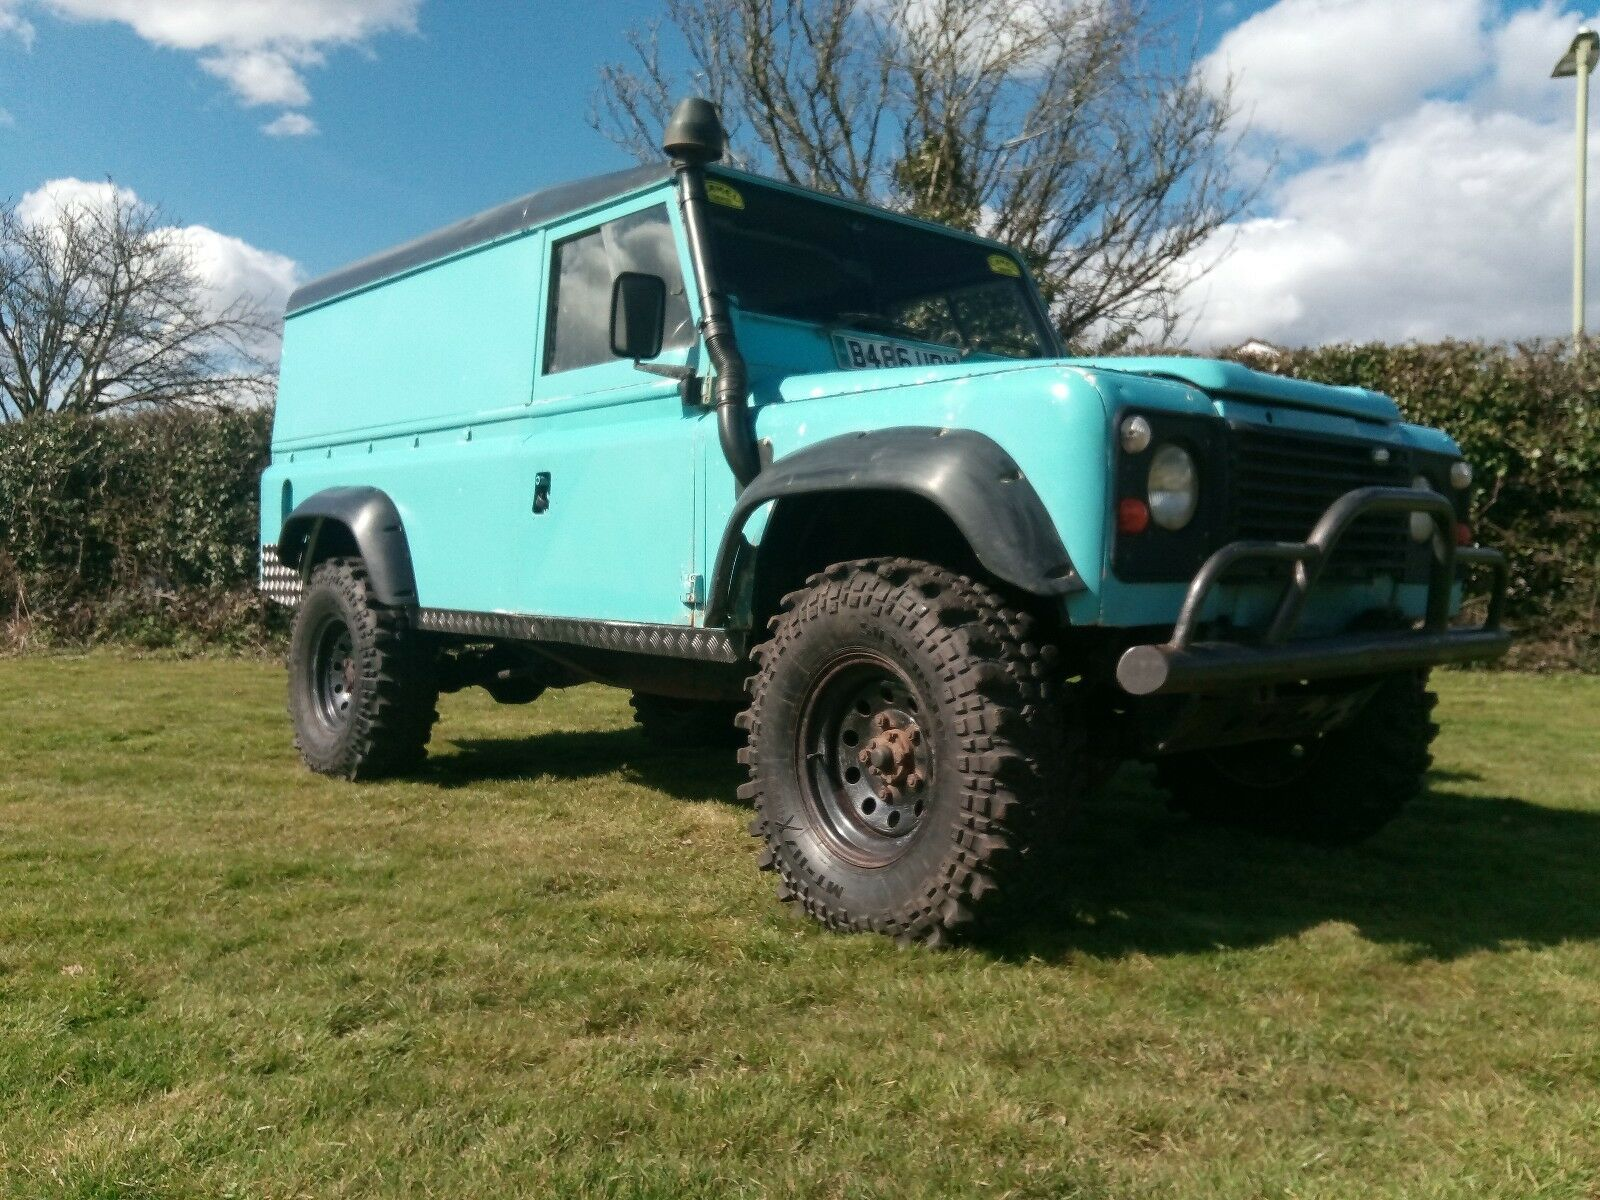 LAND ROVER DEFENDER 110 Off Road Monster Truck 4X4 Project ...